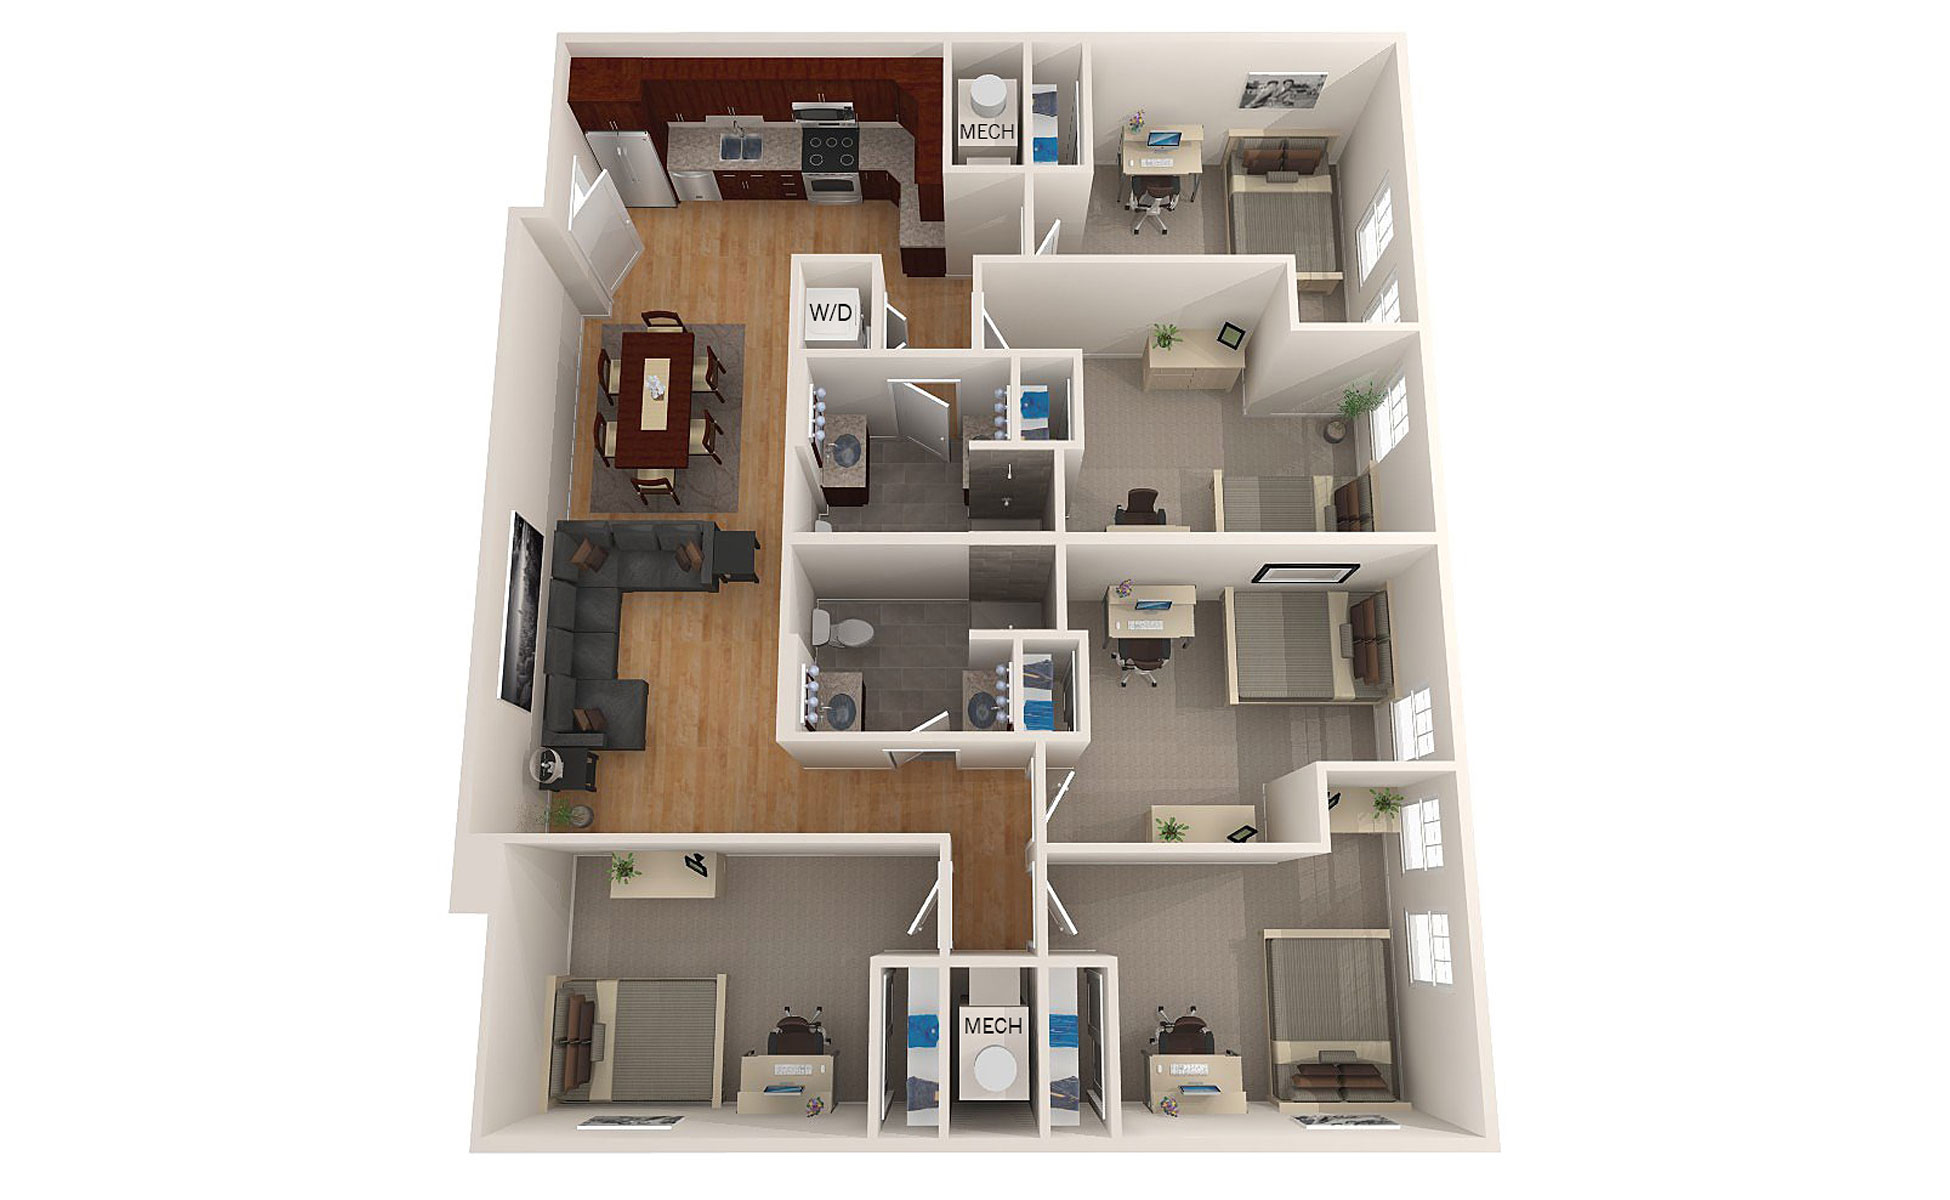 Unh off campus apartments riversedge layouts pricing for New model apartment